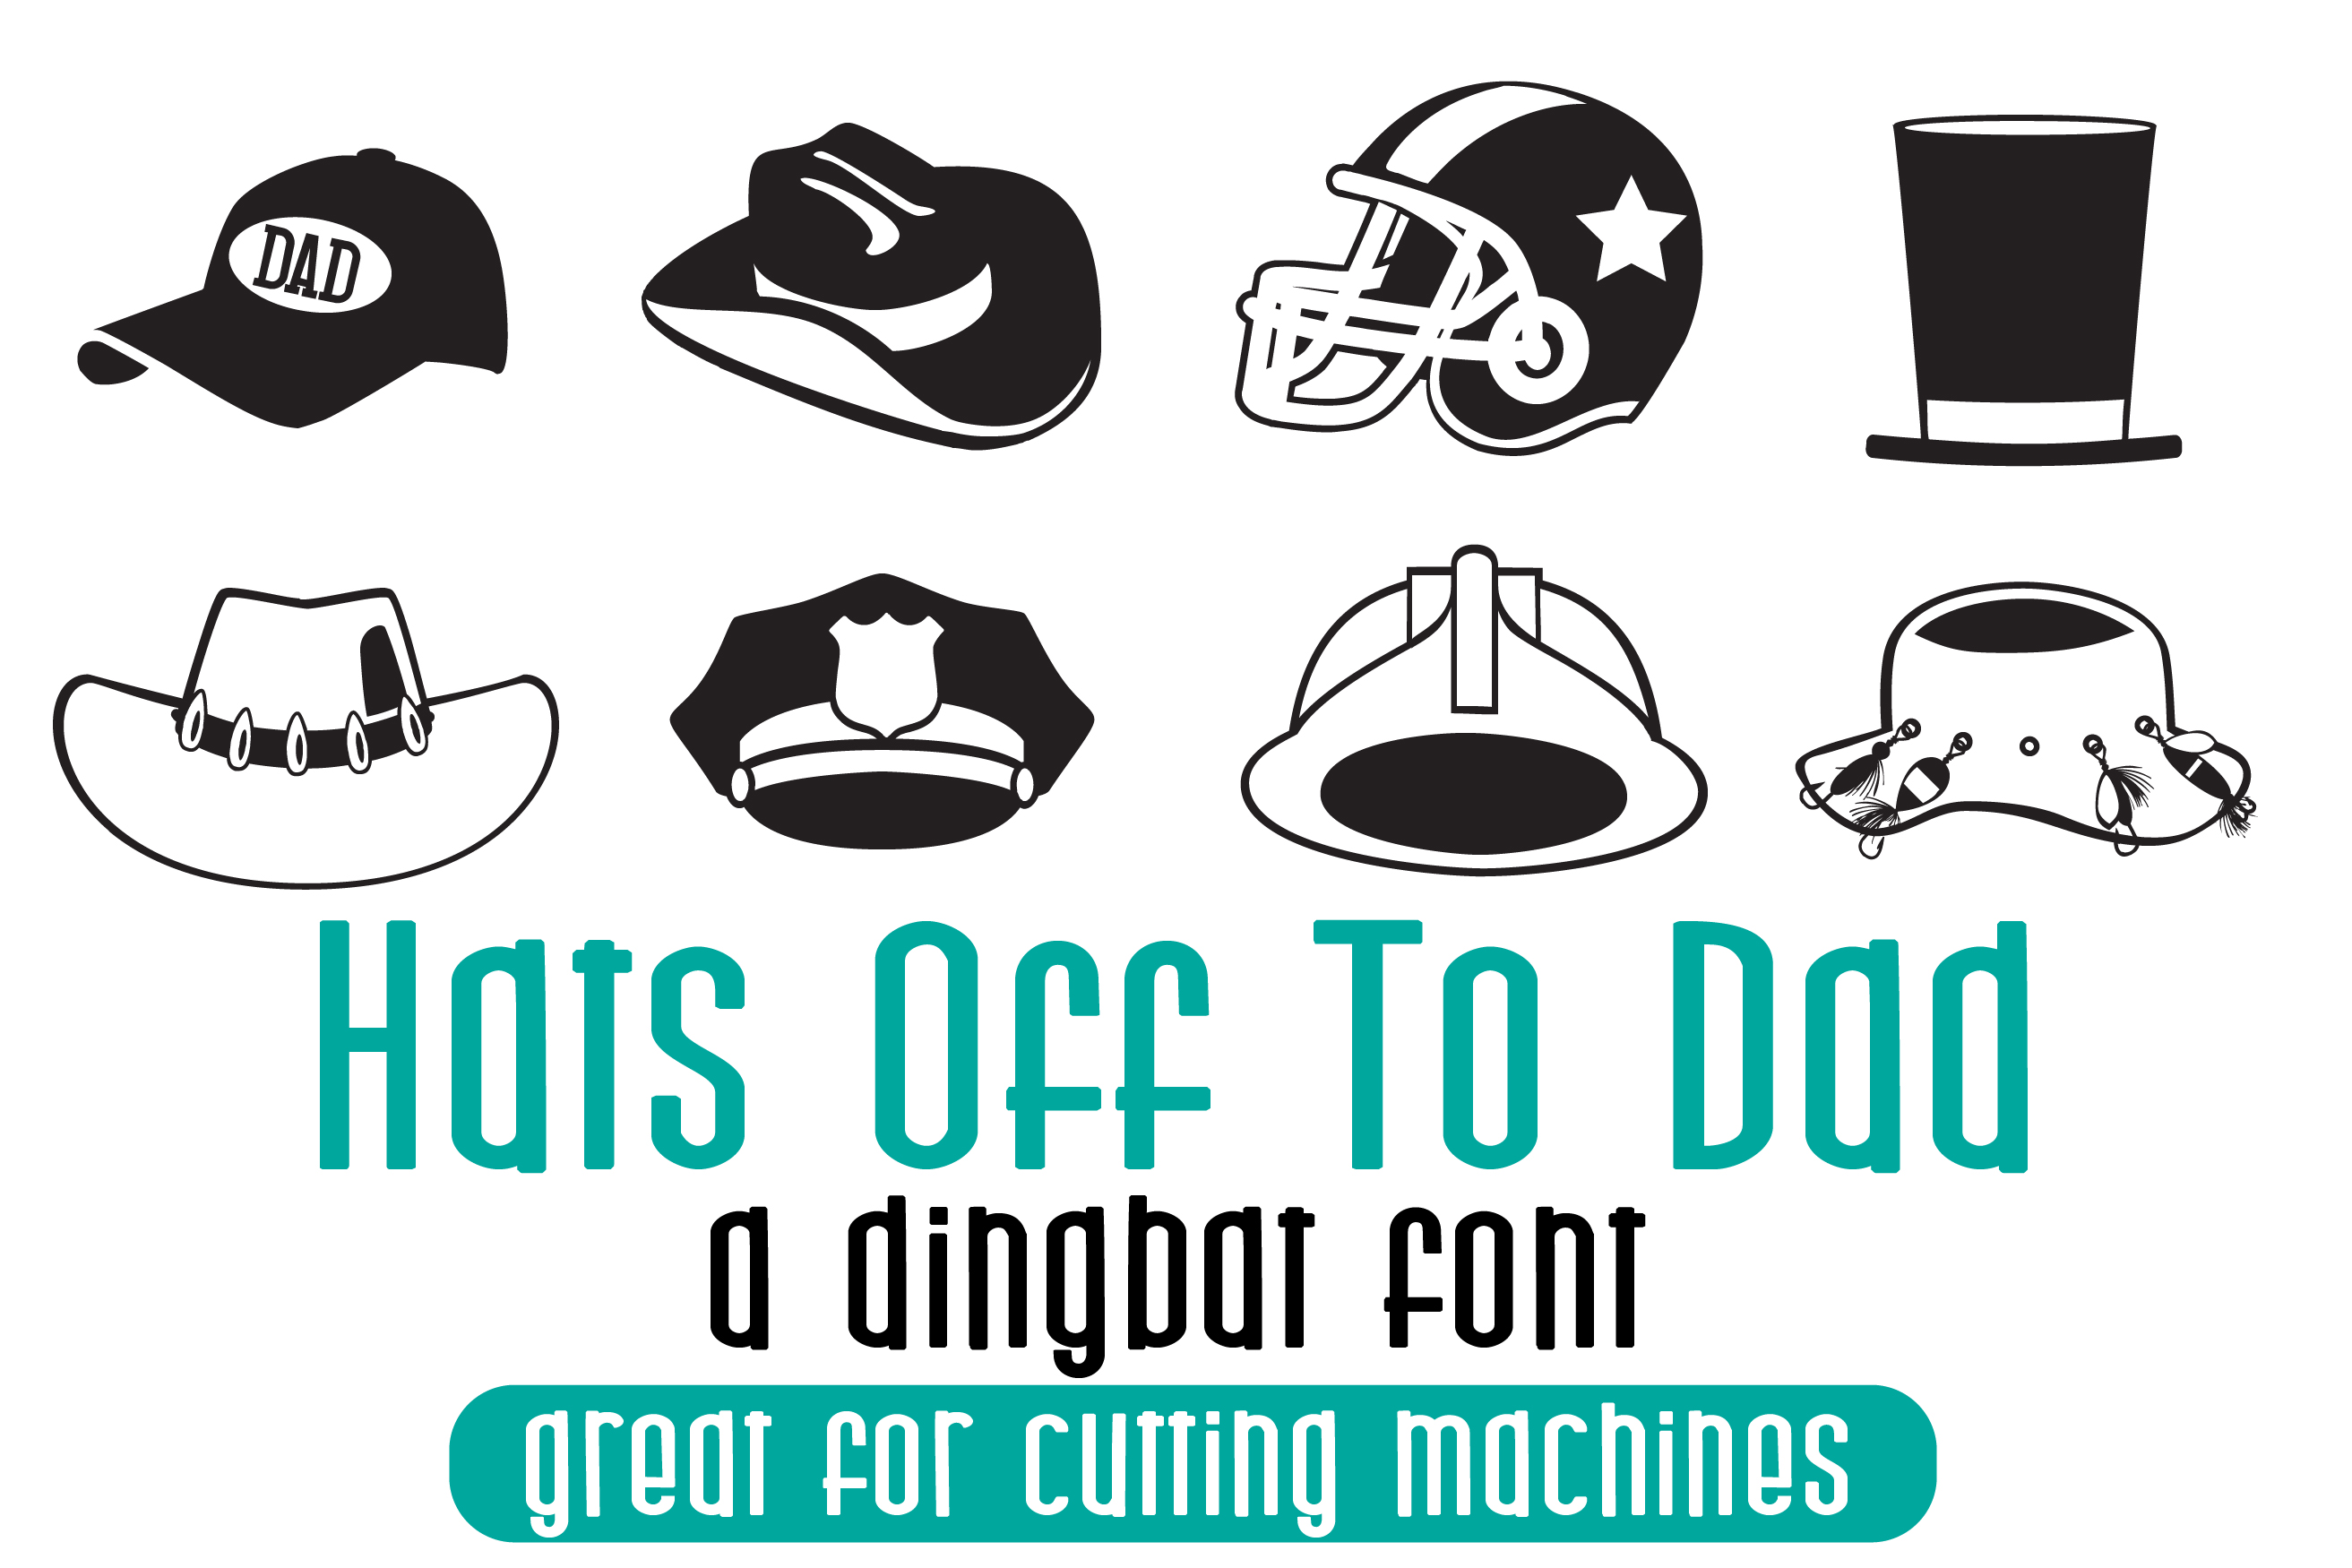 Download Free Hats Off To Dad Font By Illustration Ink Creative Fabrica for Cricut Explore, Silhouette and other cutting machines.